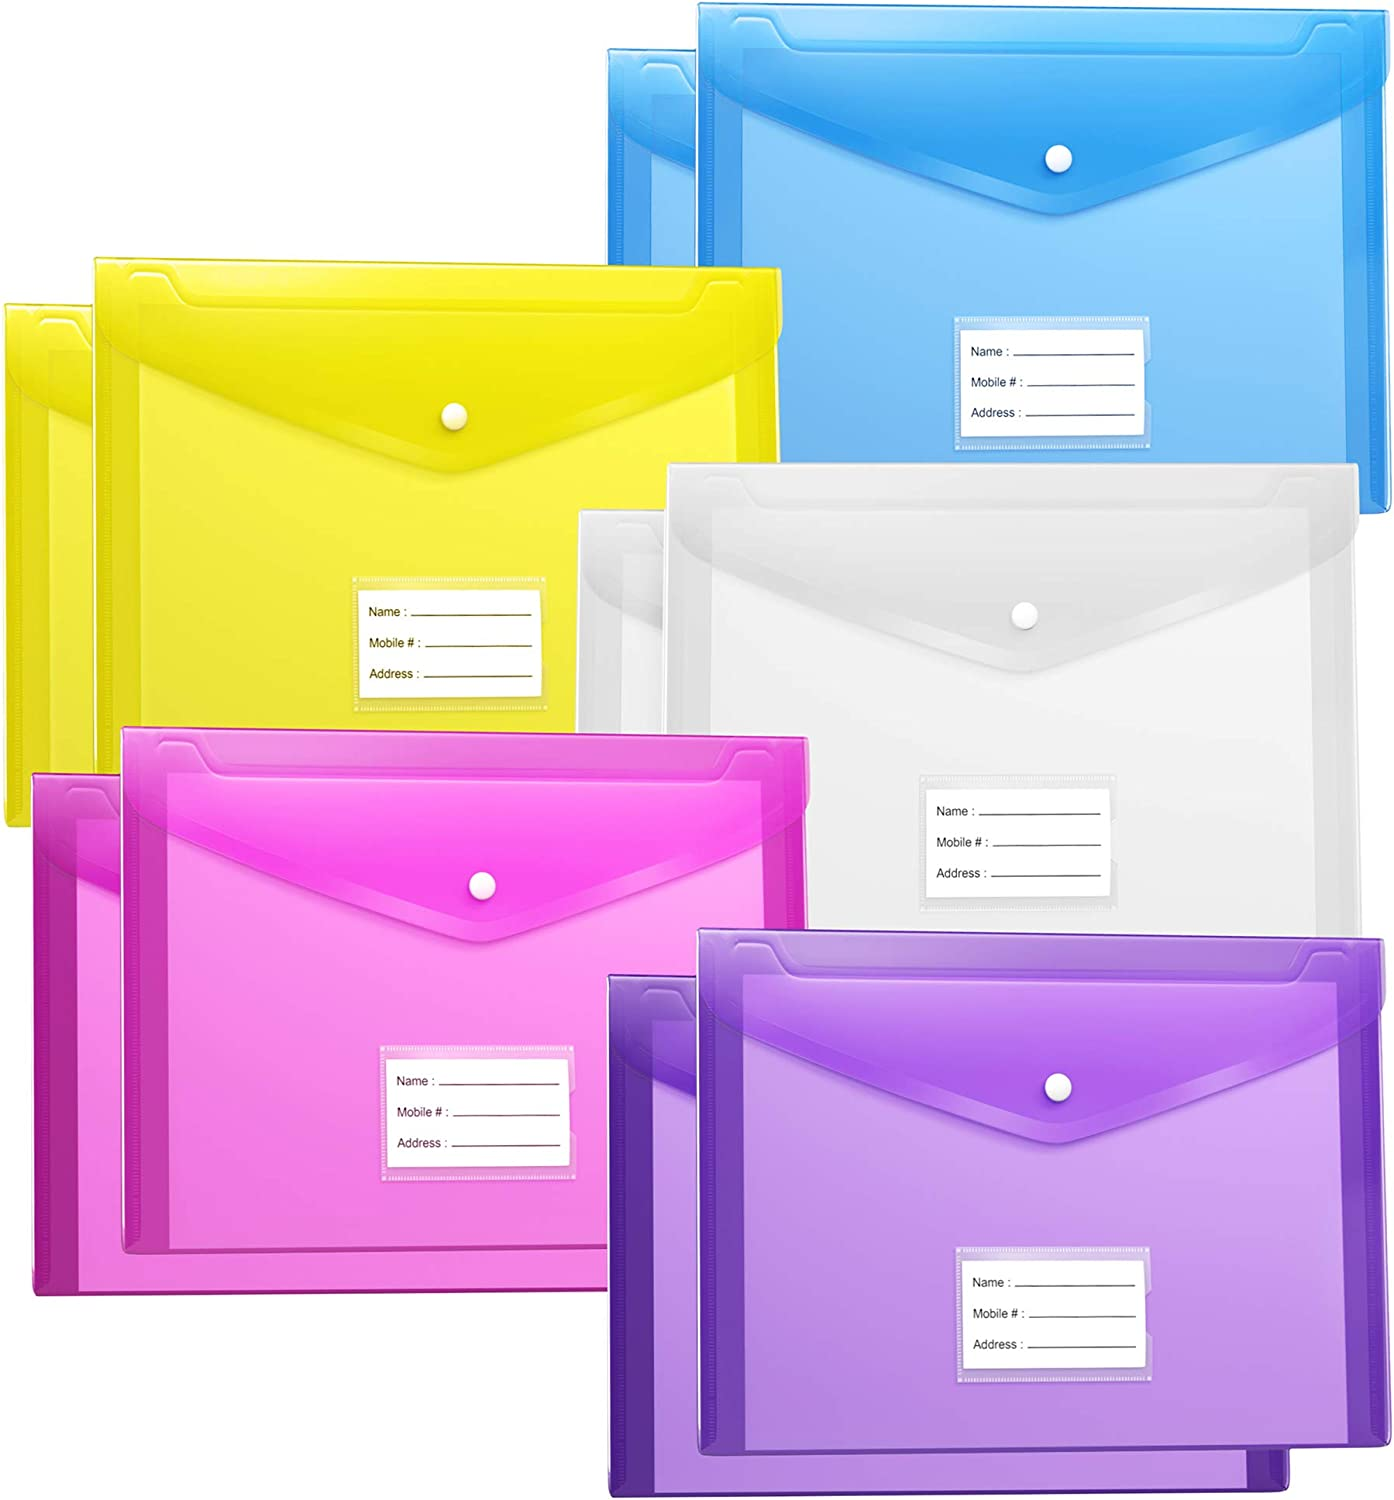 Fabnuts Plastic Pocket folders with snap Closure 10 Pack US Letter A4 Size Clear Poly File Envelopes with Label Pocket for School/Home/Office - Assorted Colors